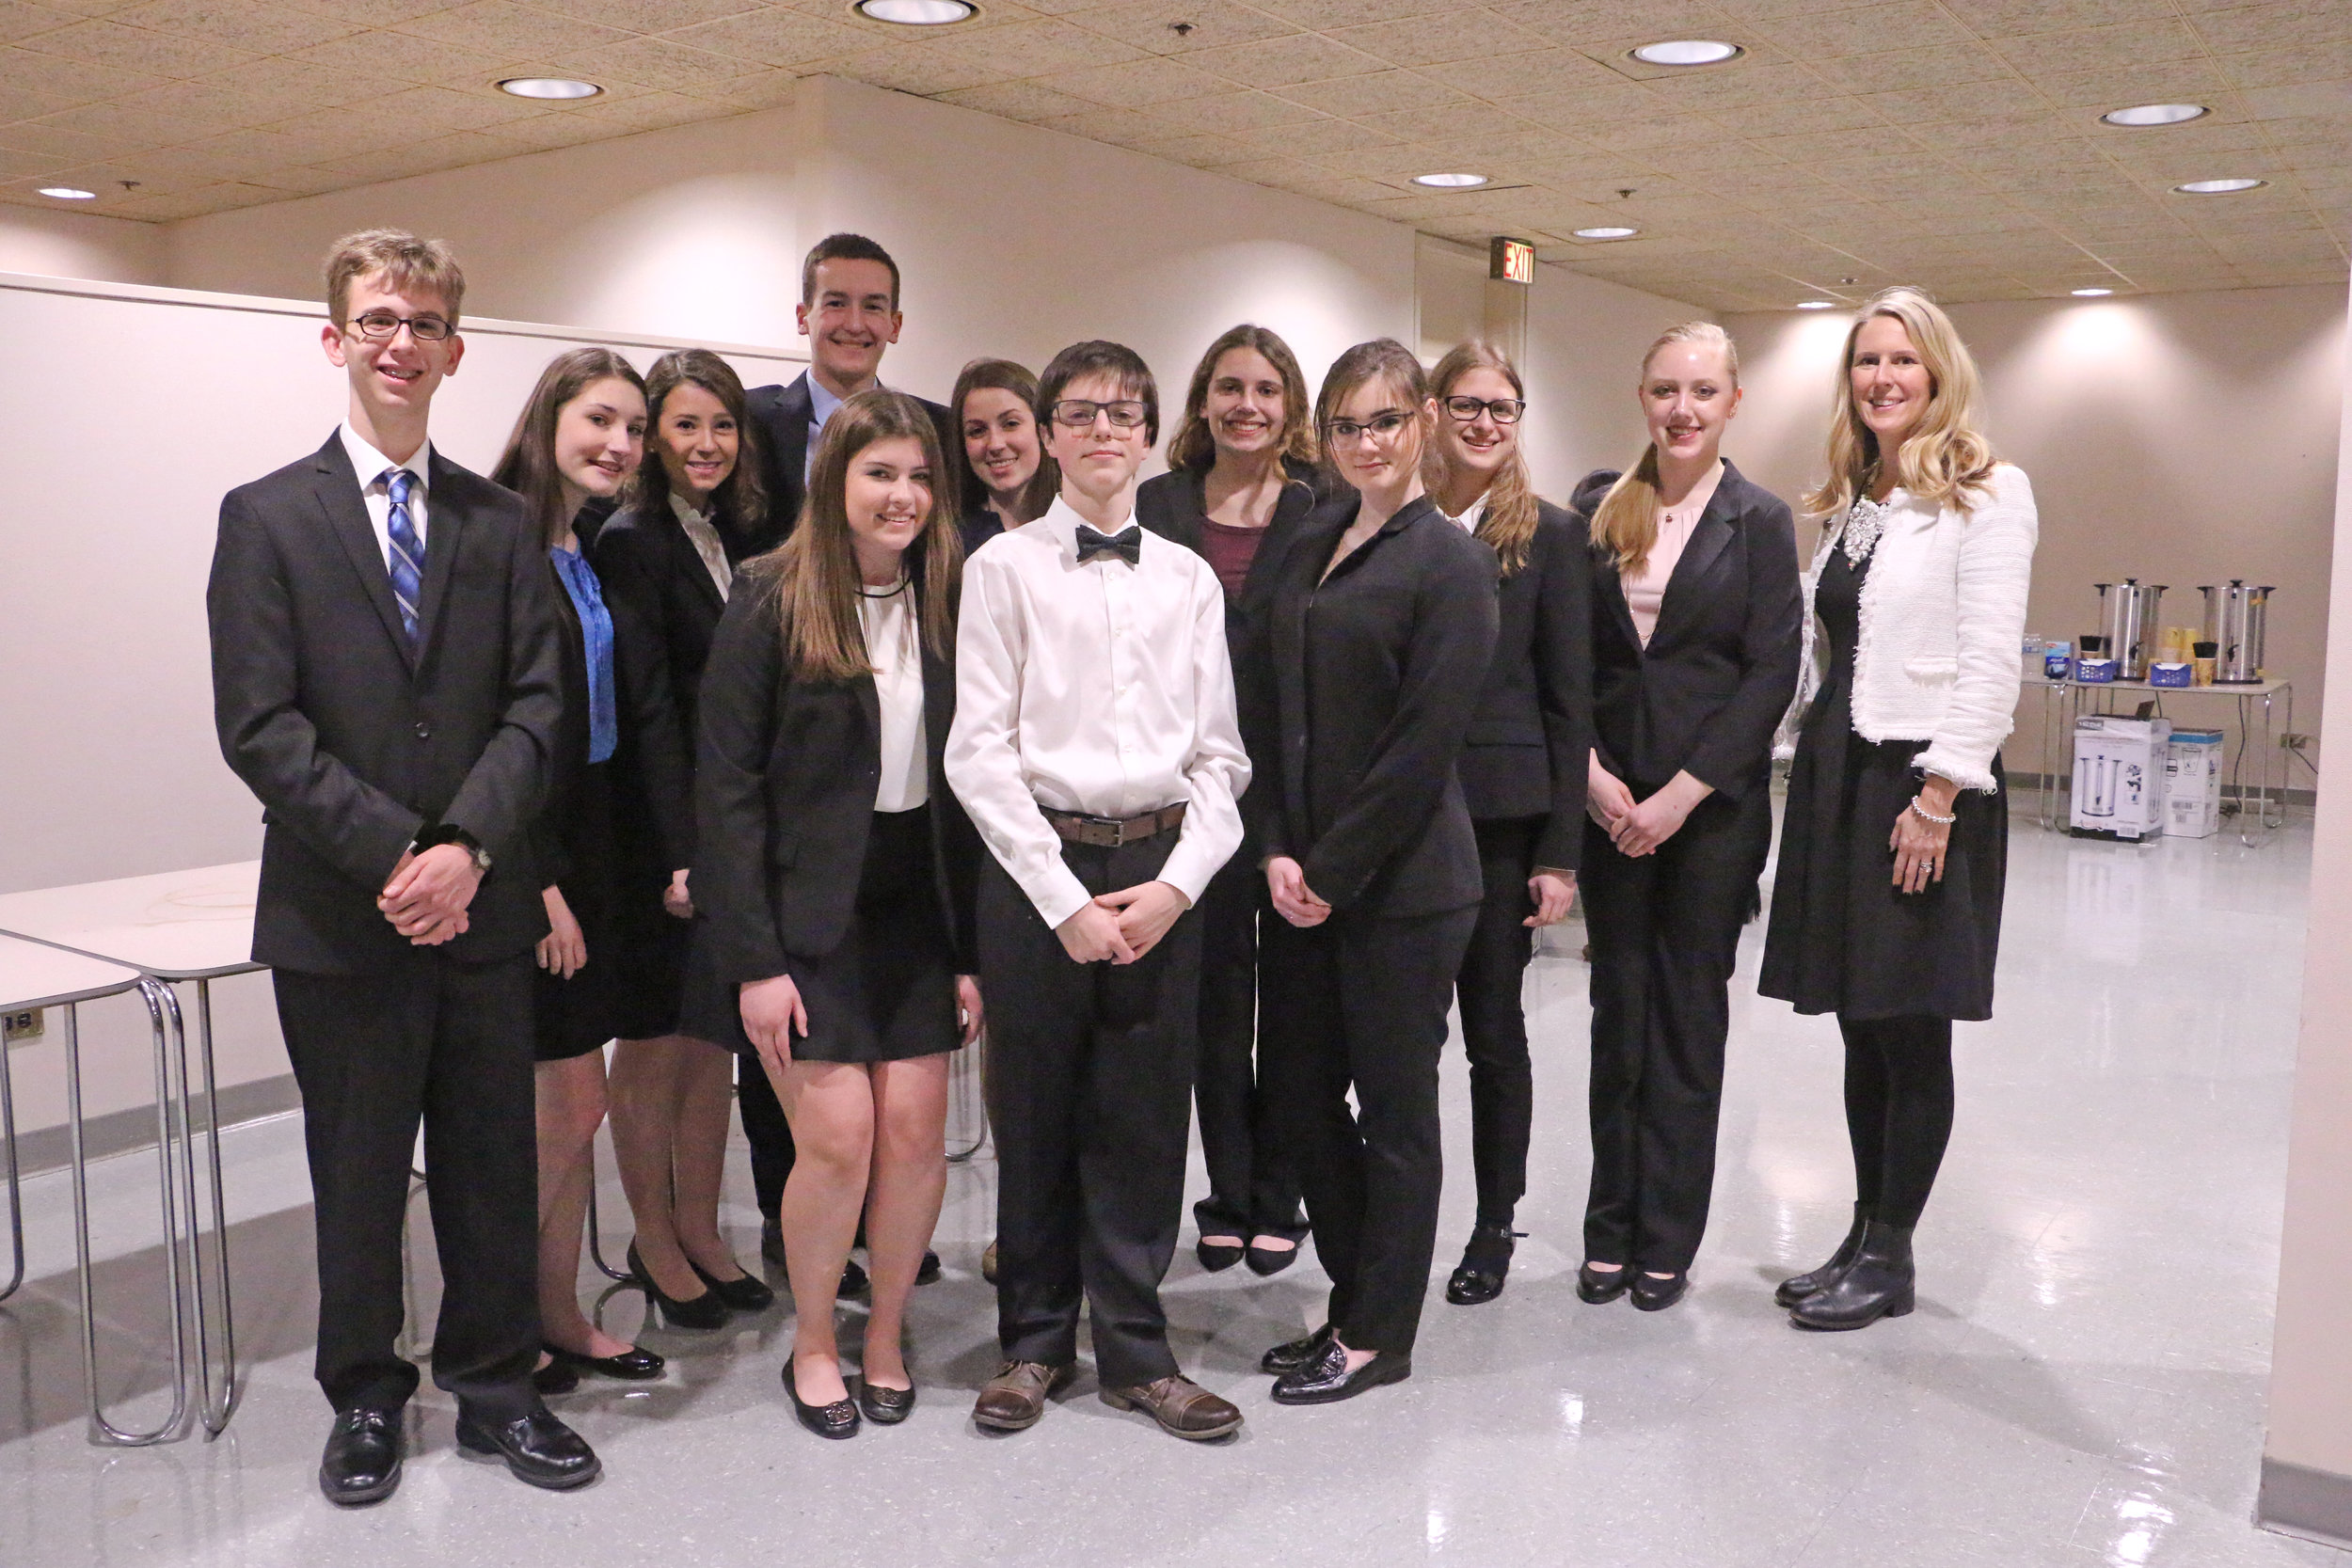 John Hersey High School participated in the February 2017 mock trial hosted by the Northwest Suburban Bar Association.